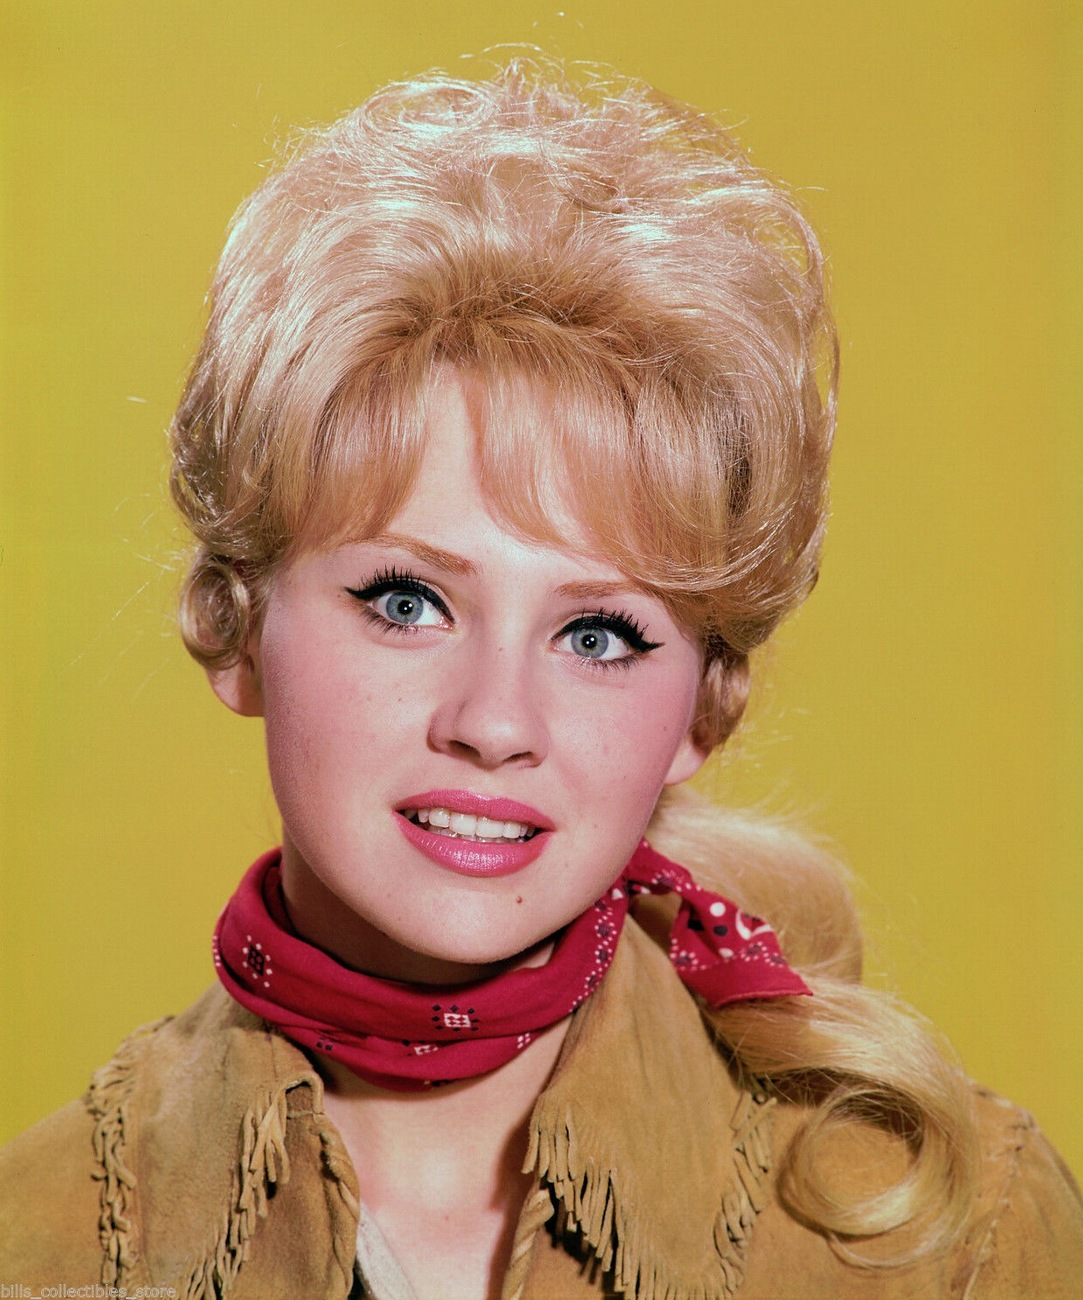 Melody Patterson Melody Patterson new images